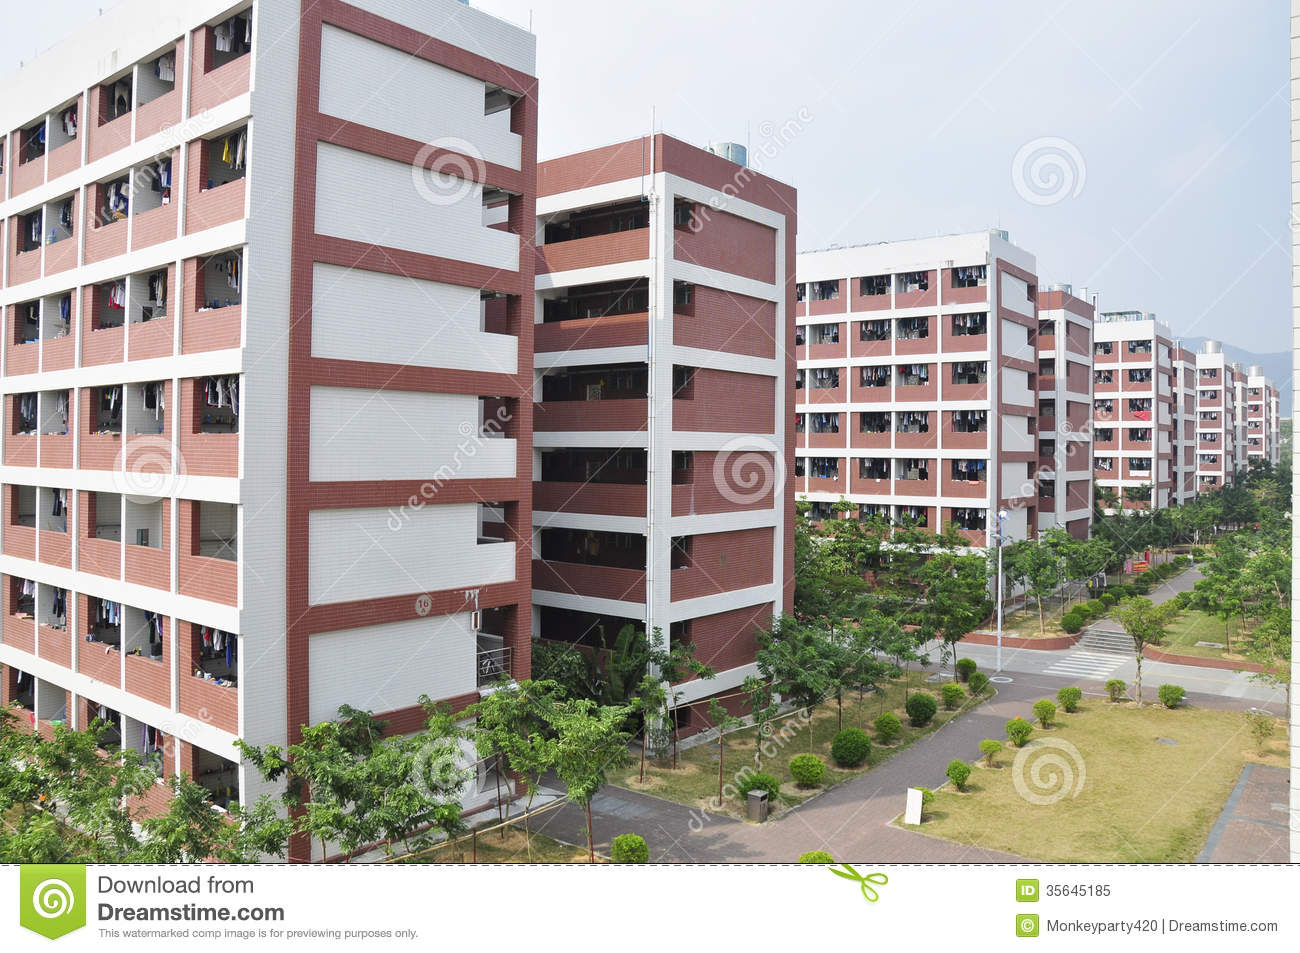 CHINA College Dormitory stock image  Image of dorms, dormitories